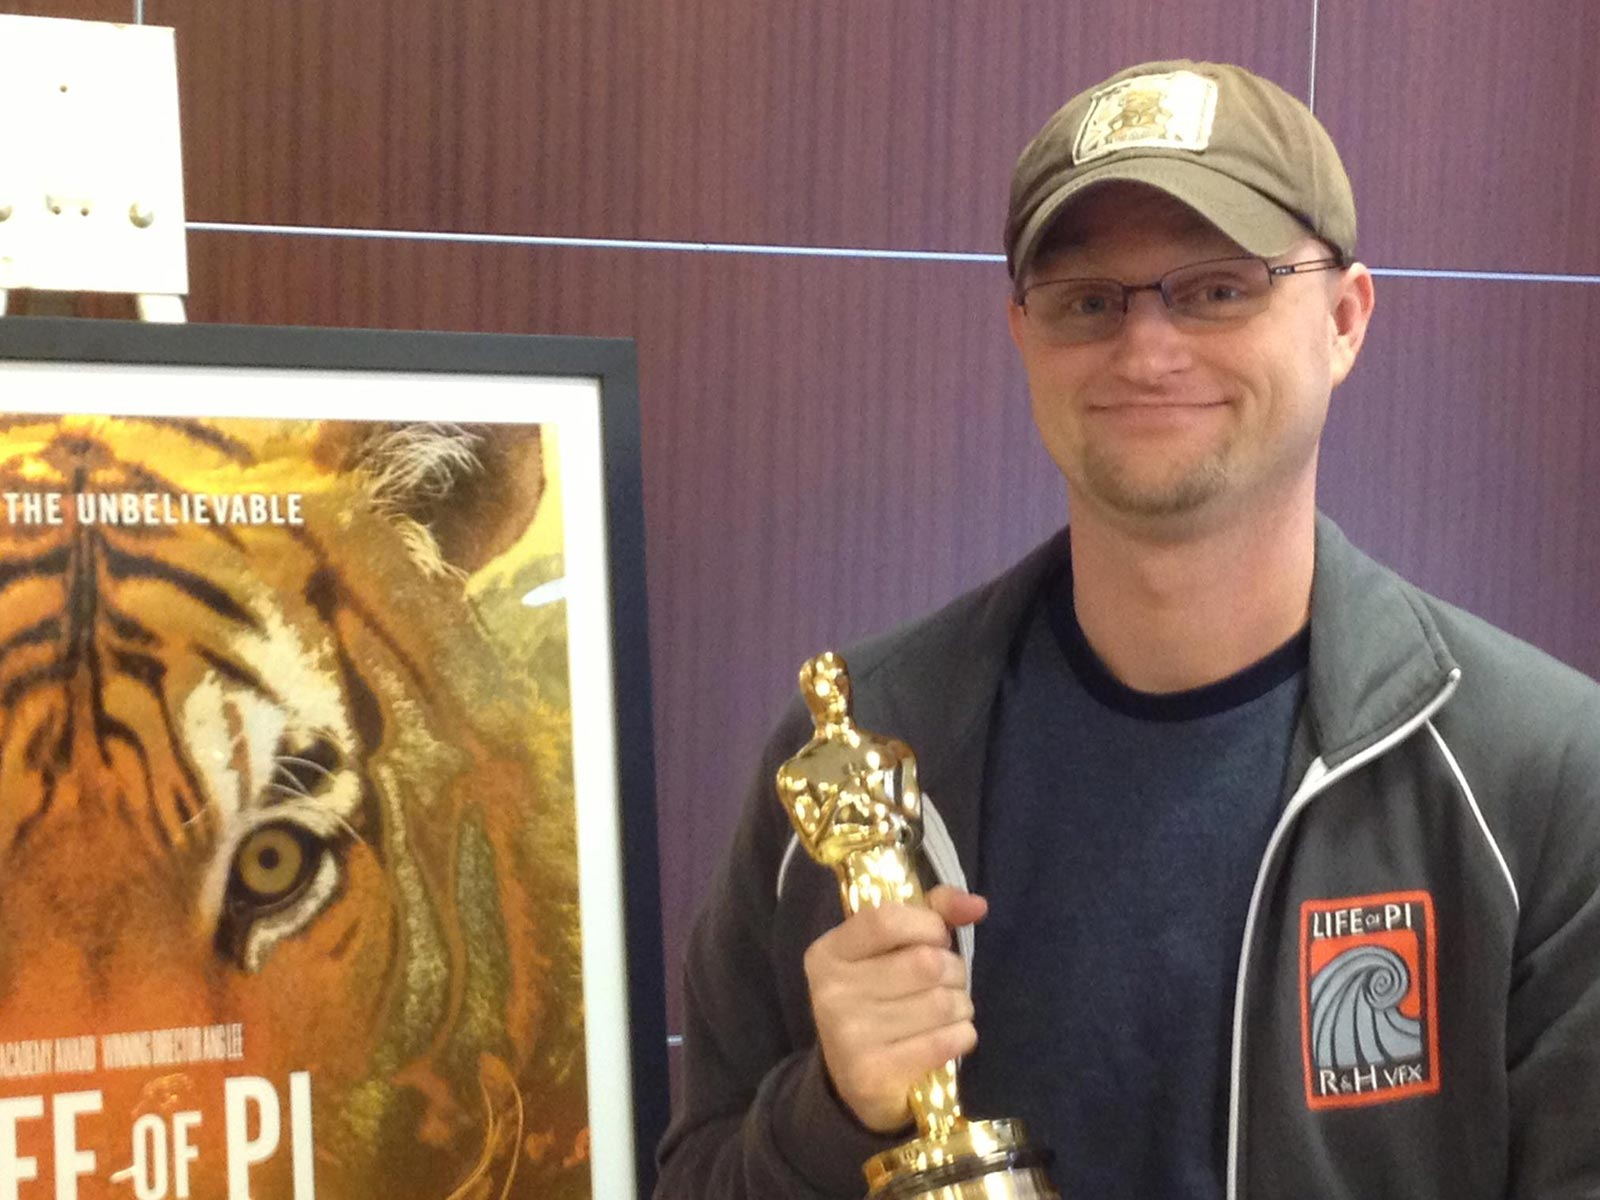 Photo of Chris holding an Oscar for his work on the movie Life of Pi